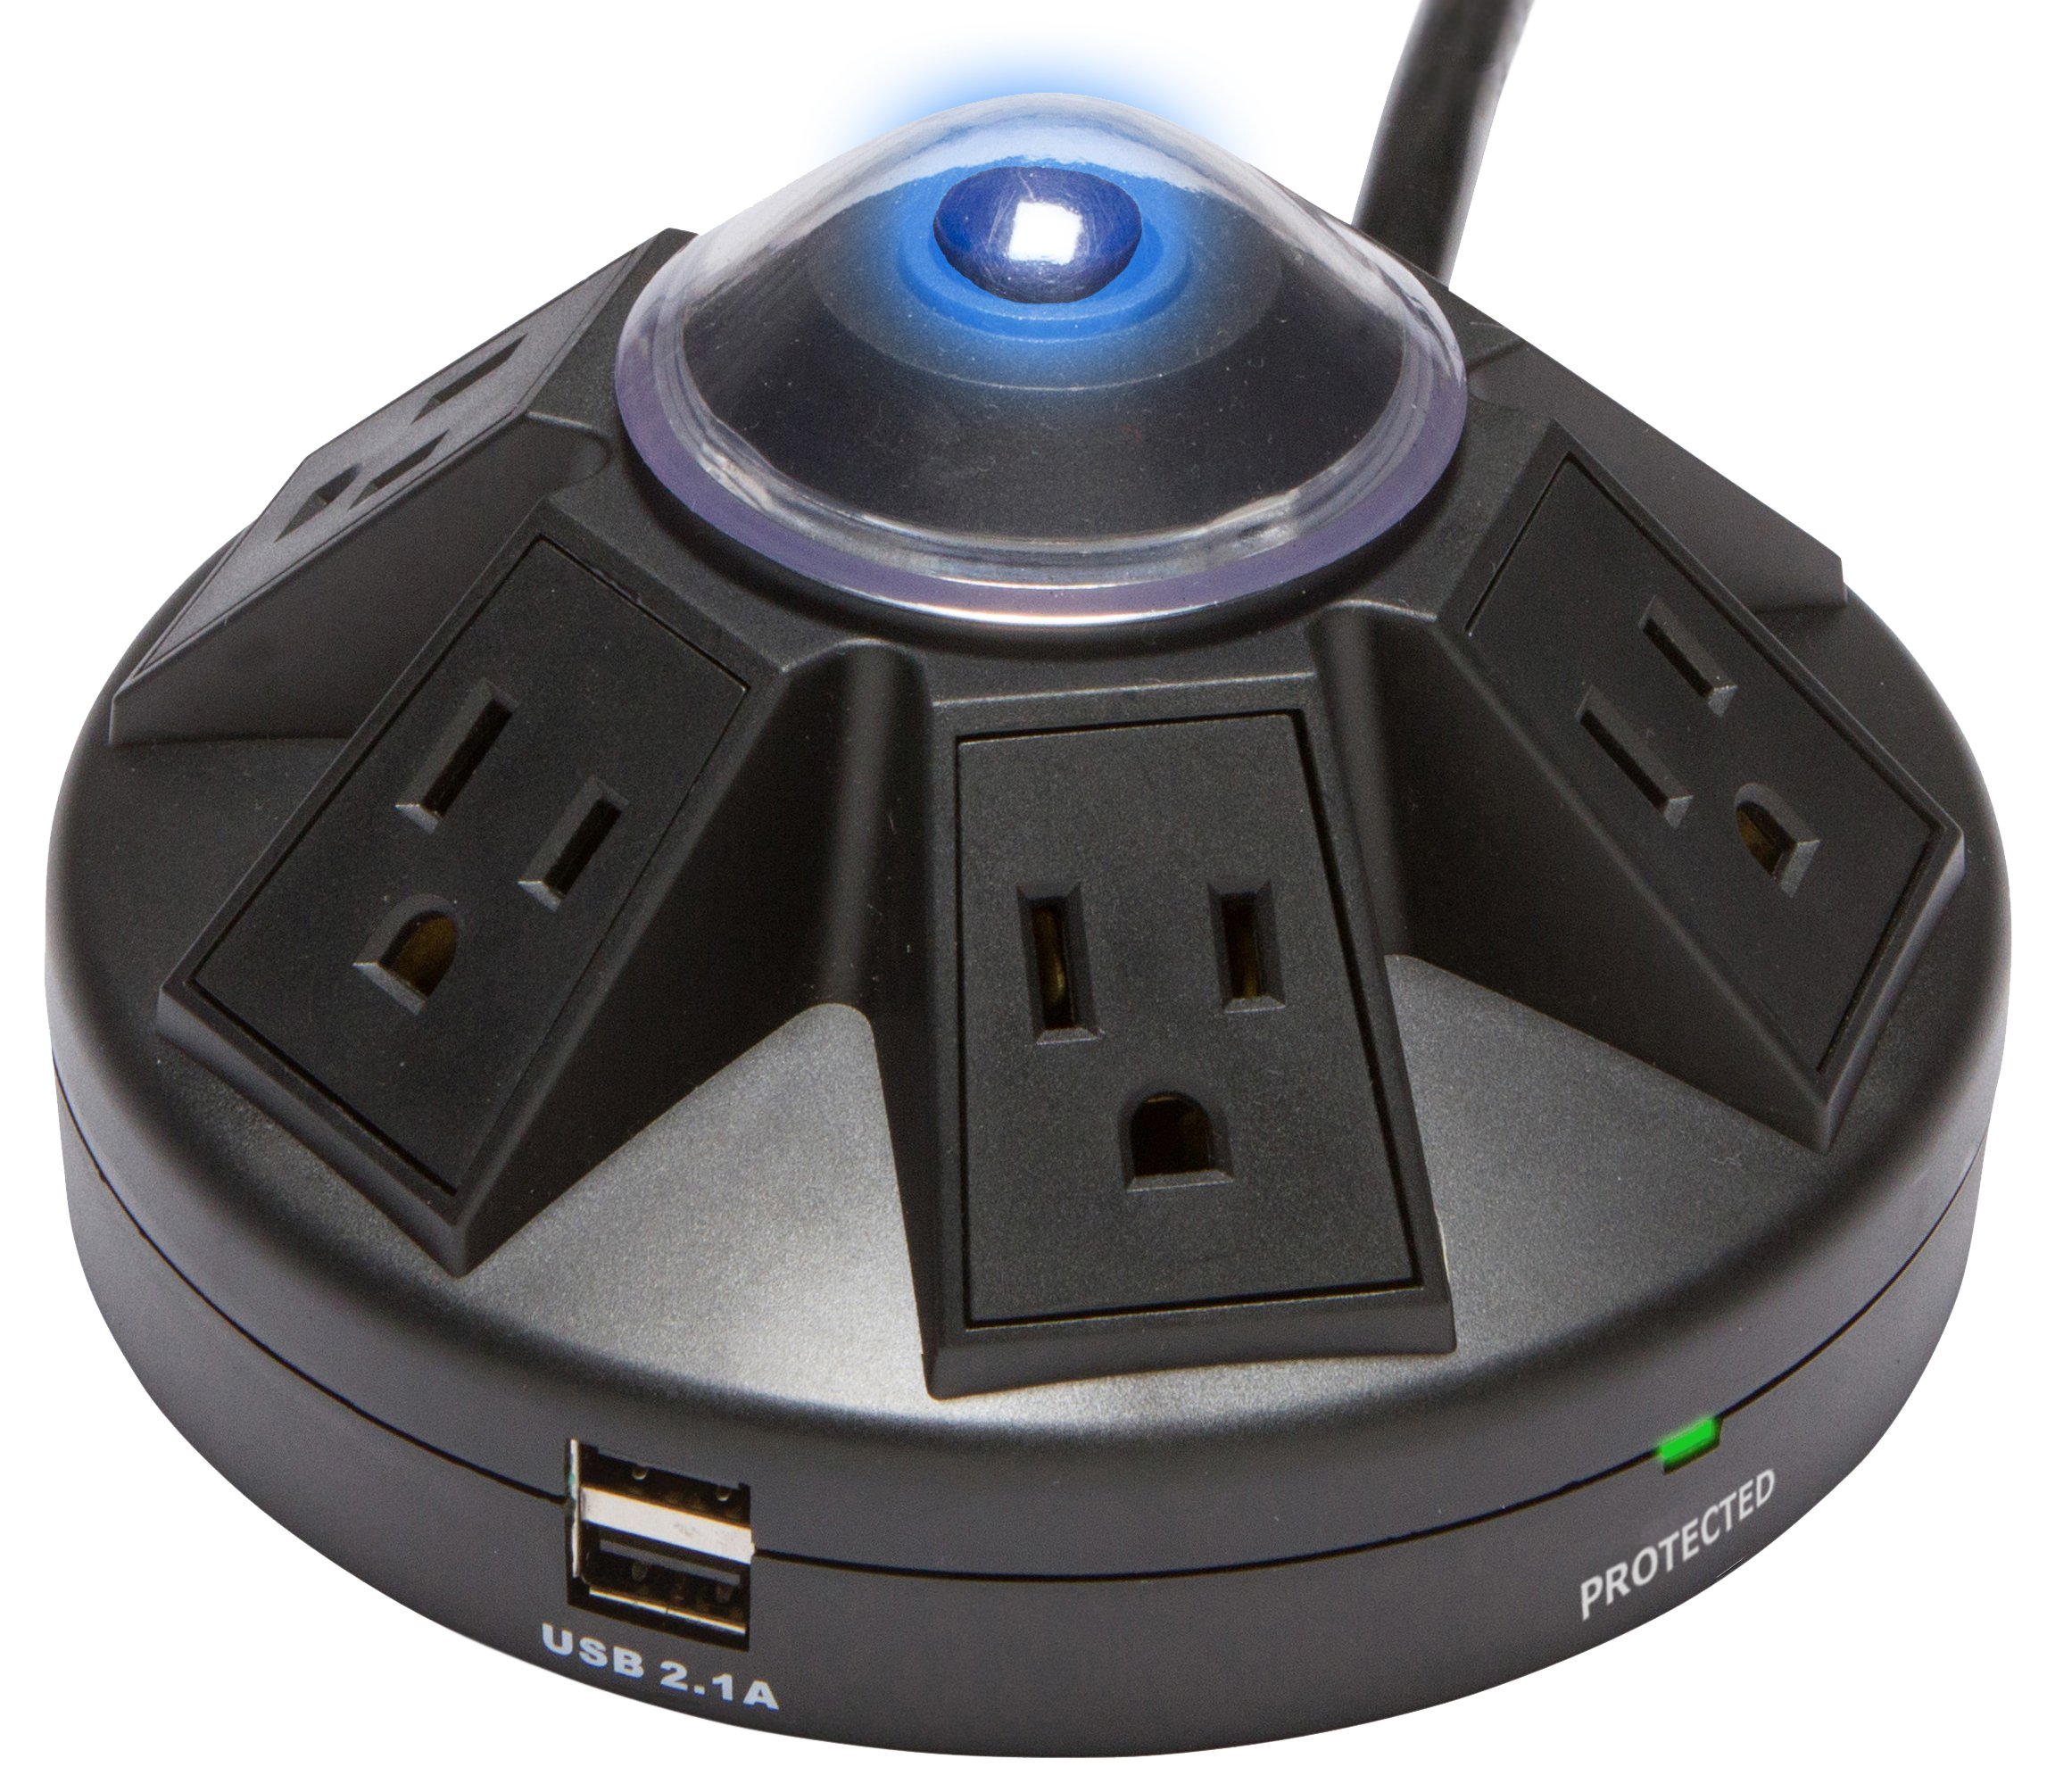 Accell Powramid 6-Outlet Surge Protector with 2x USB Charging Ports - Black - 6-Foot Cord, 1080 Joules, 2.1A USB Output, UL Listed by Accell